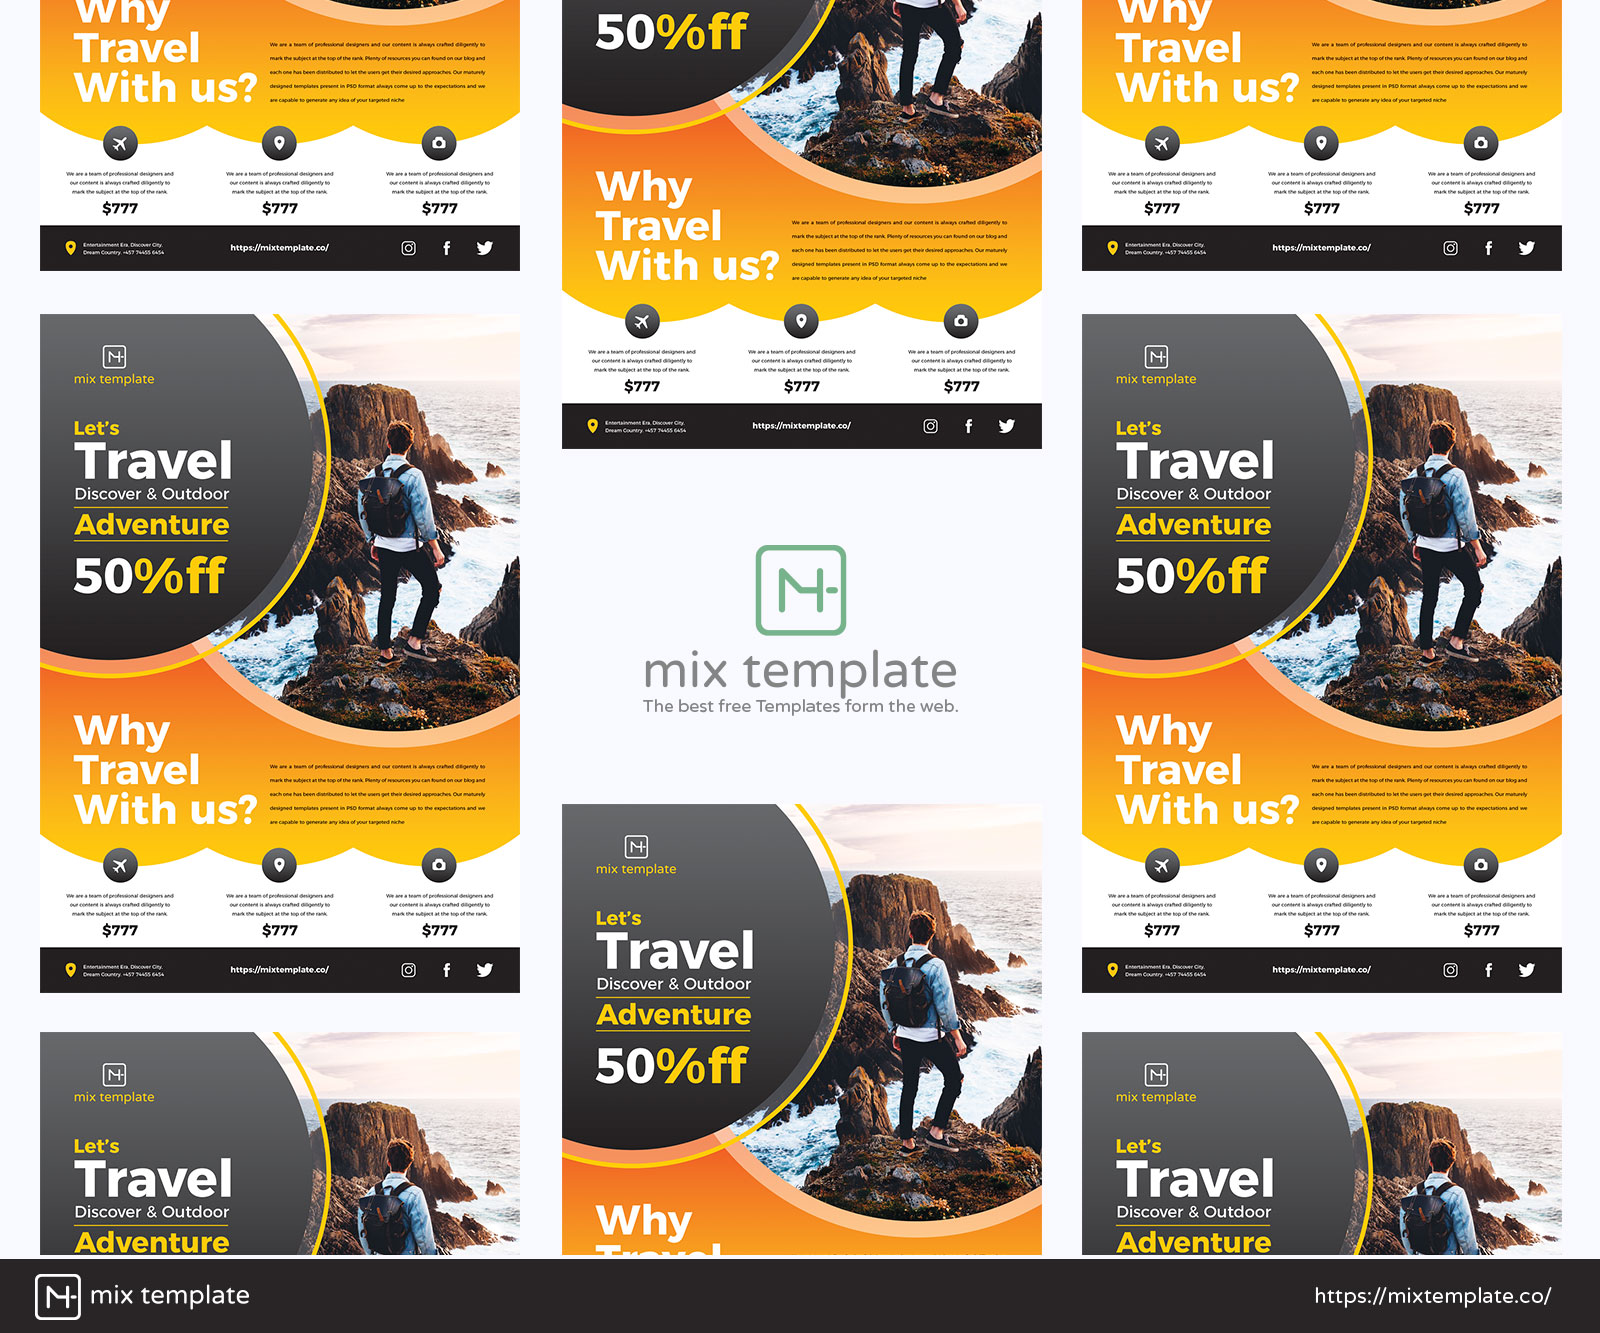 Free-Design-of-Travel-Flyer-Template-38